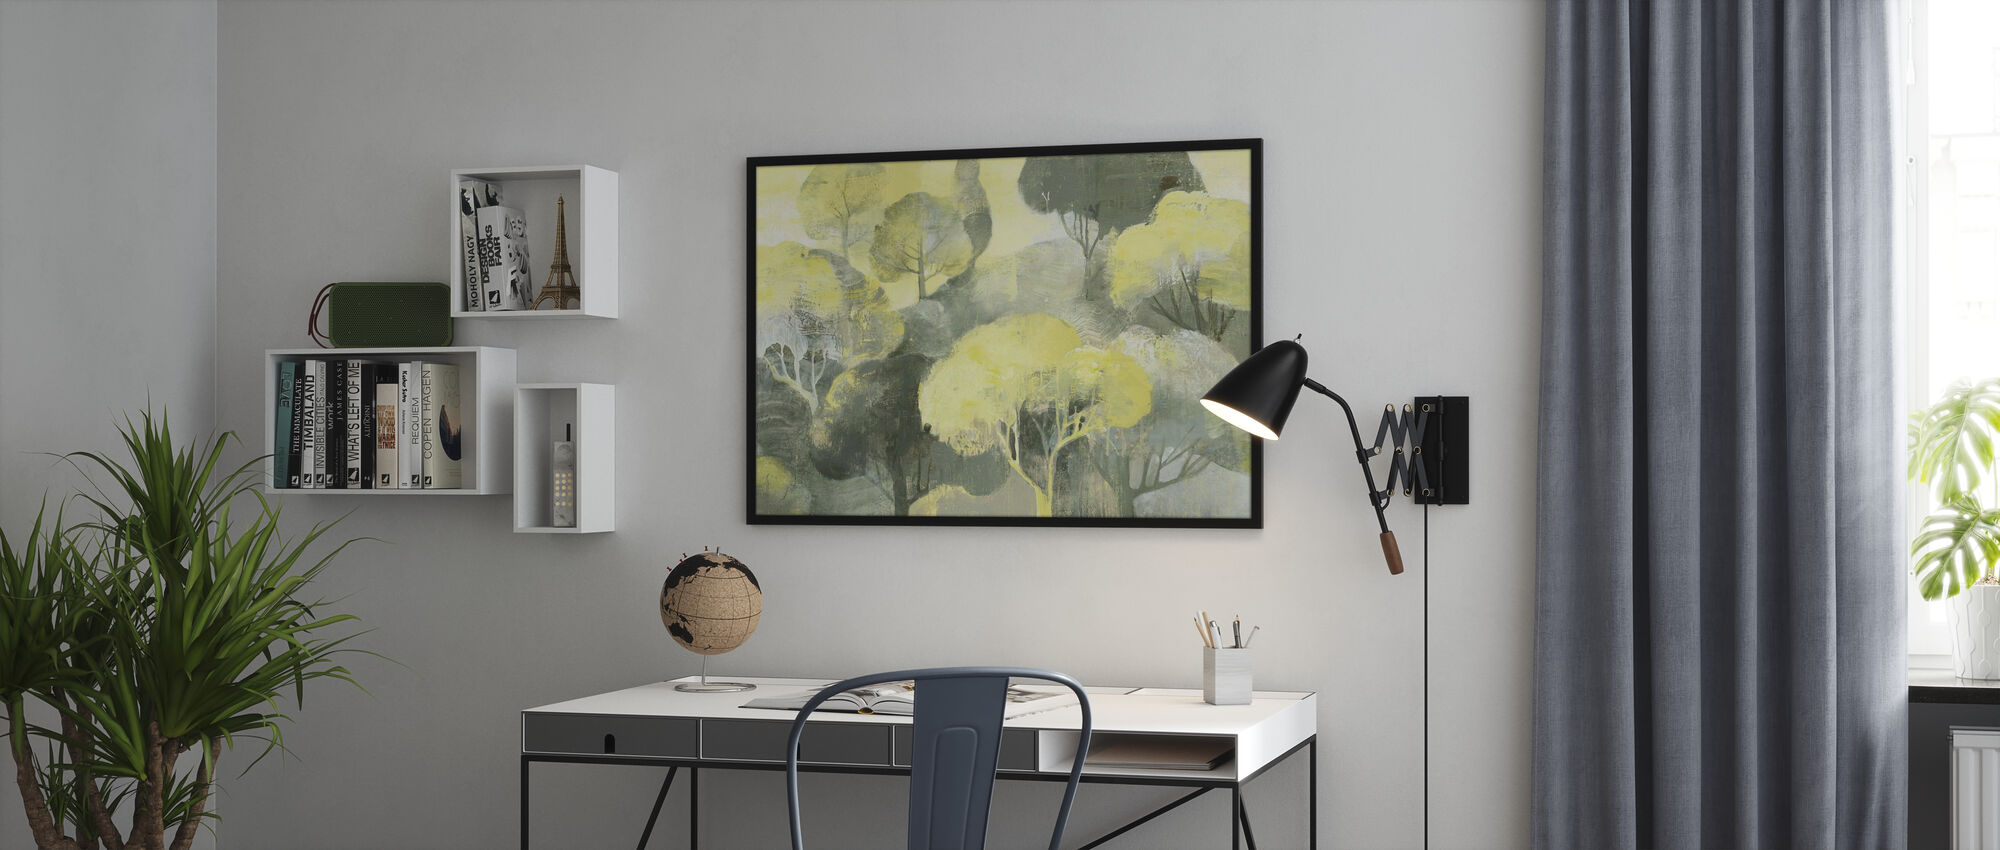 Looking Out at the Trees - Poster - Office